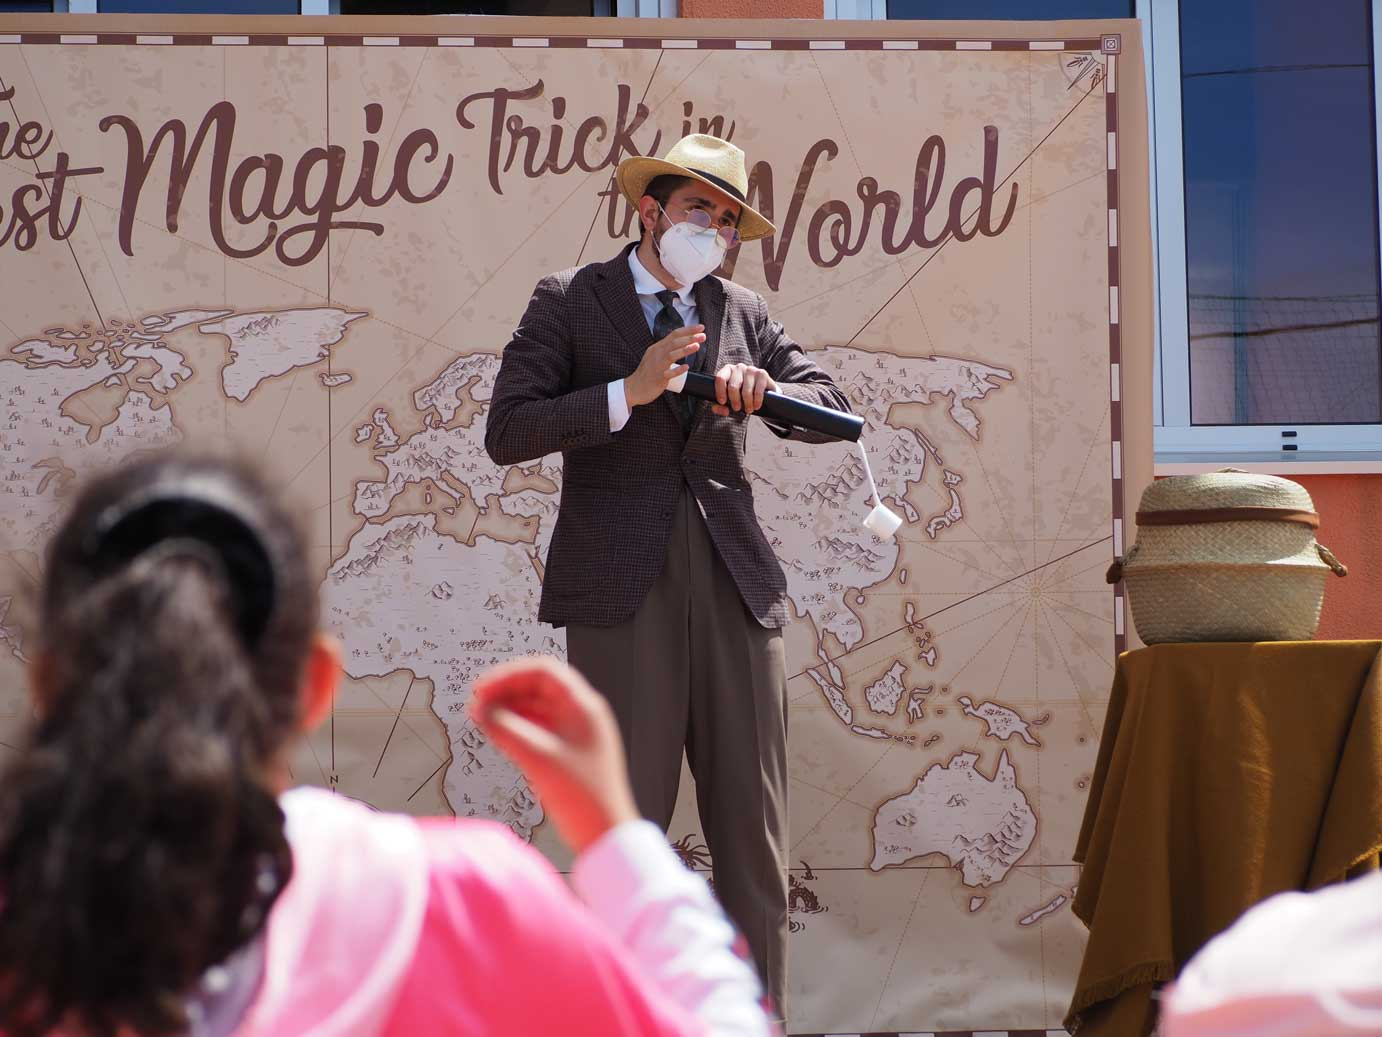 the-best-magic-trick-in-the-world-10